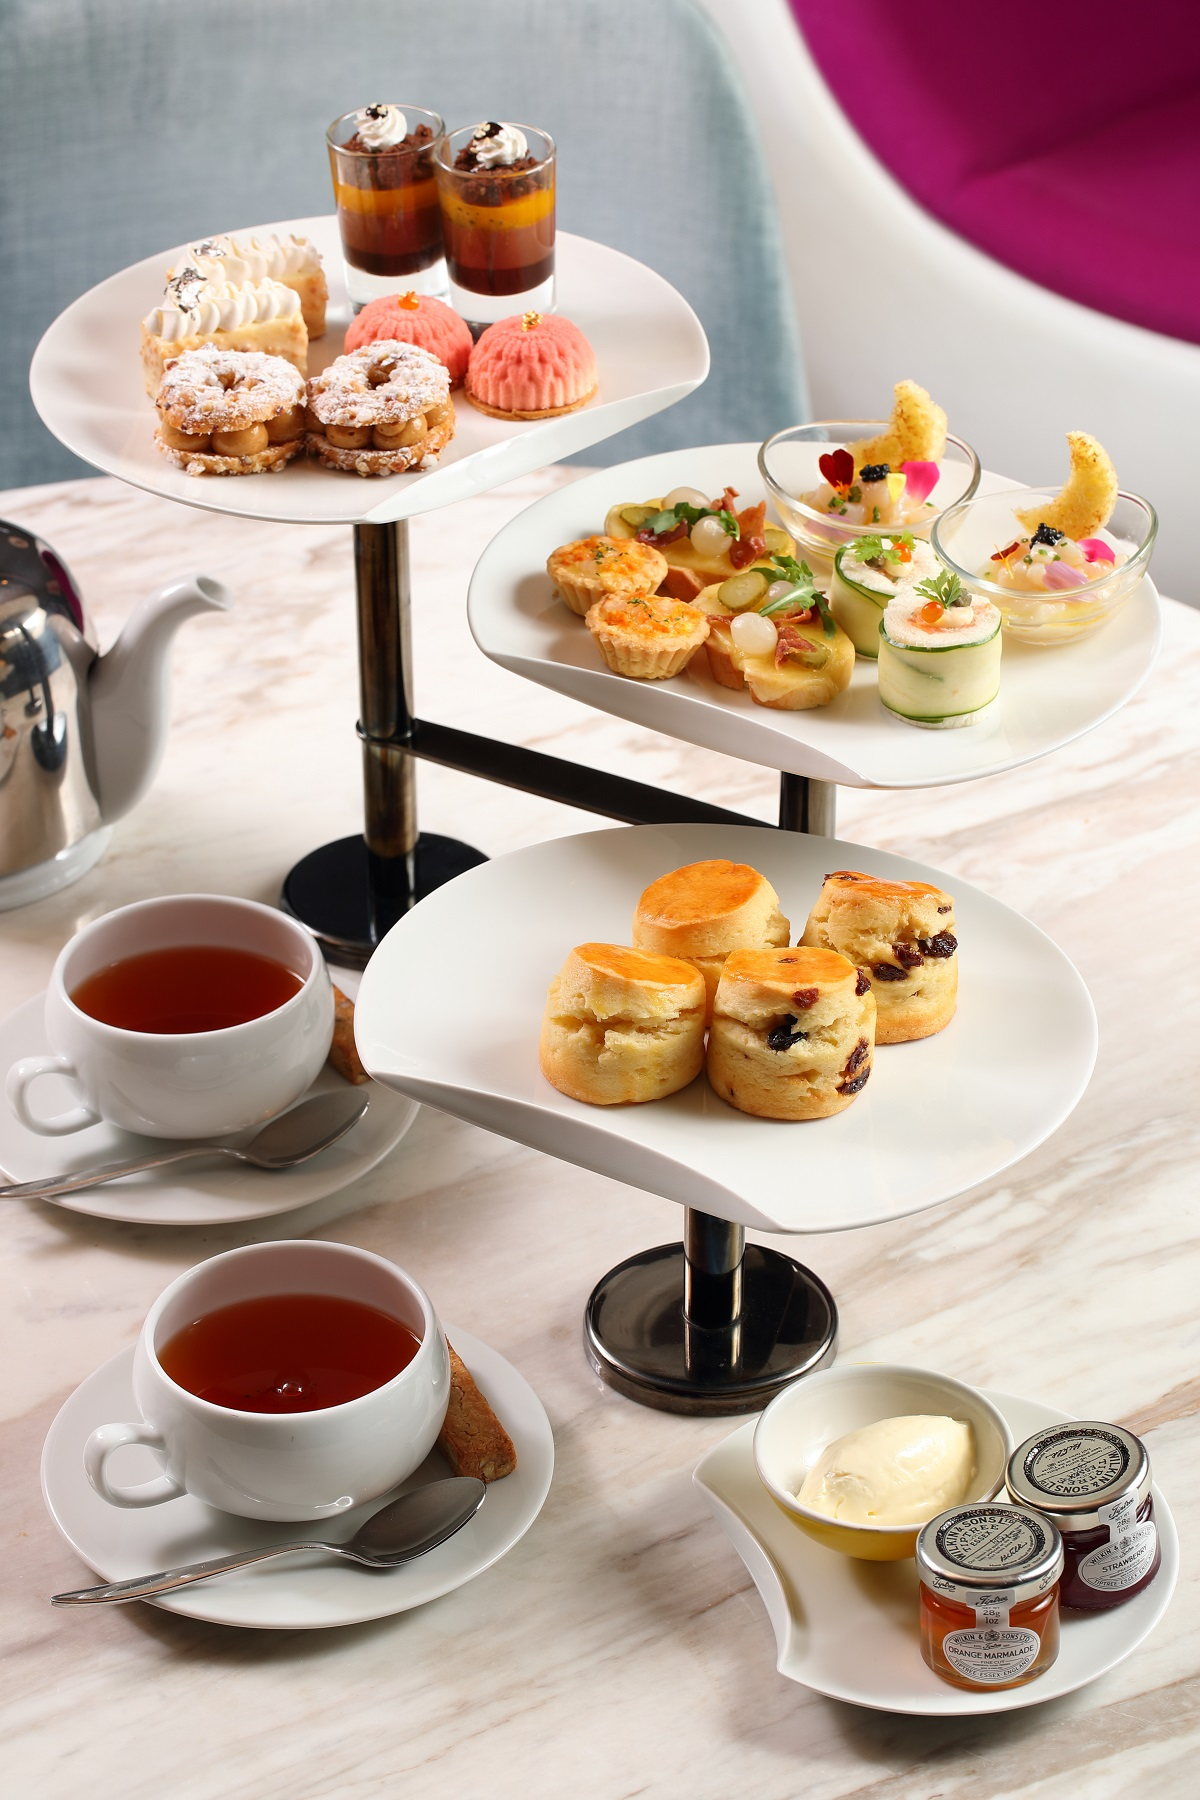 Ebb and Flow Afternoon Tea Hong Kong 5 star hotel The Park Lane Hong Kong a Pullman Hotel